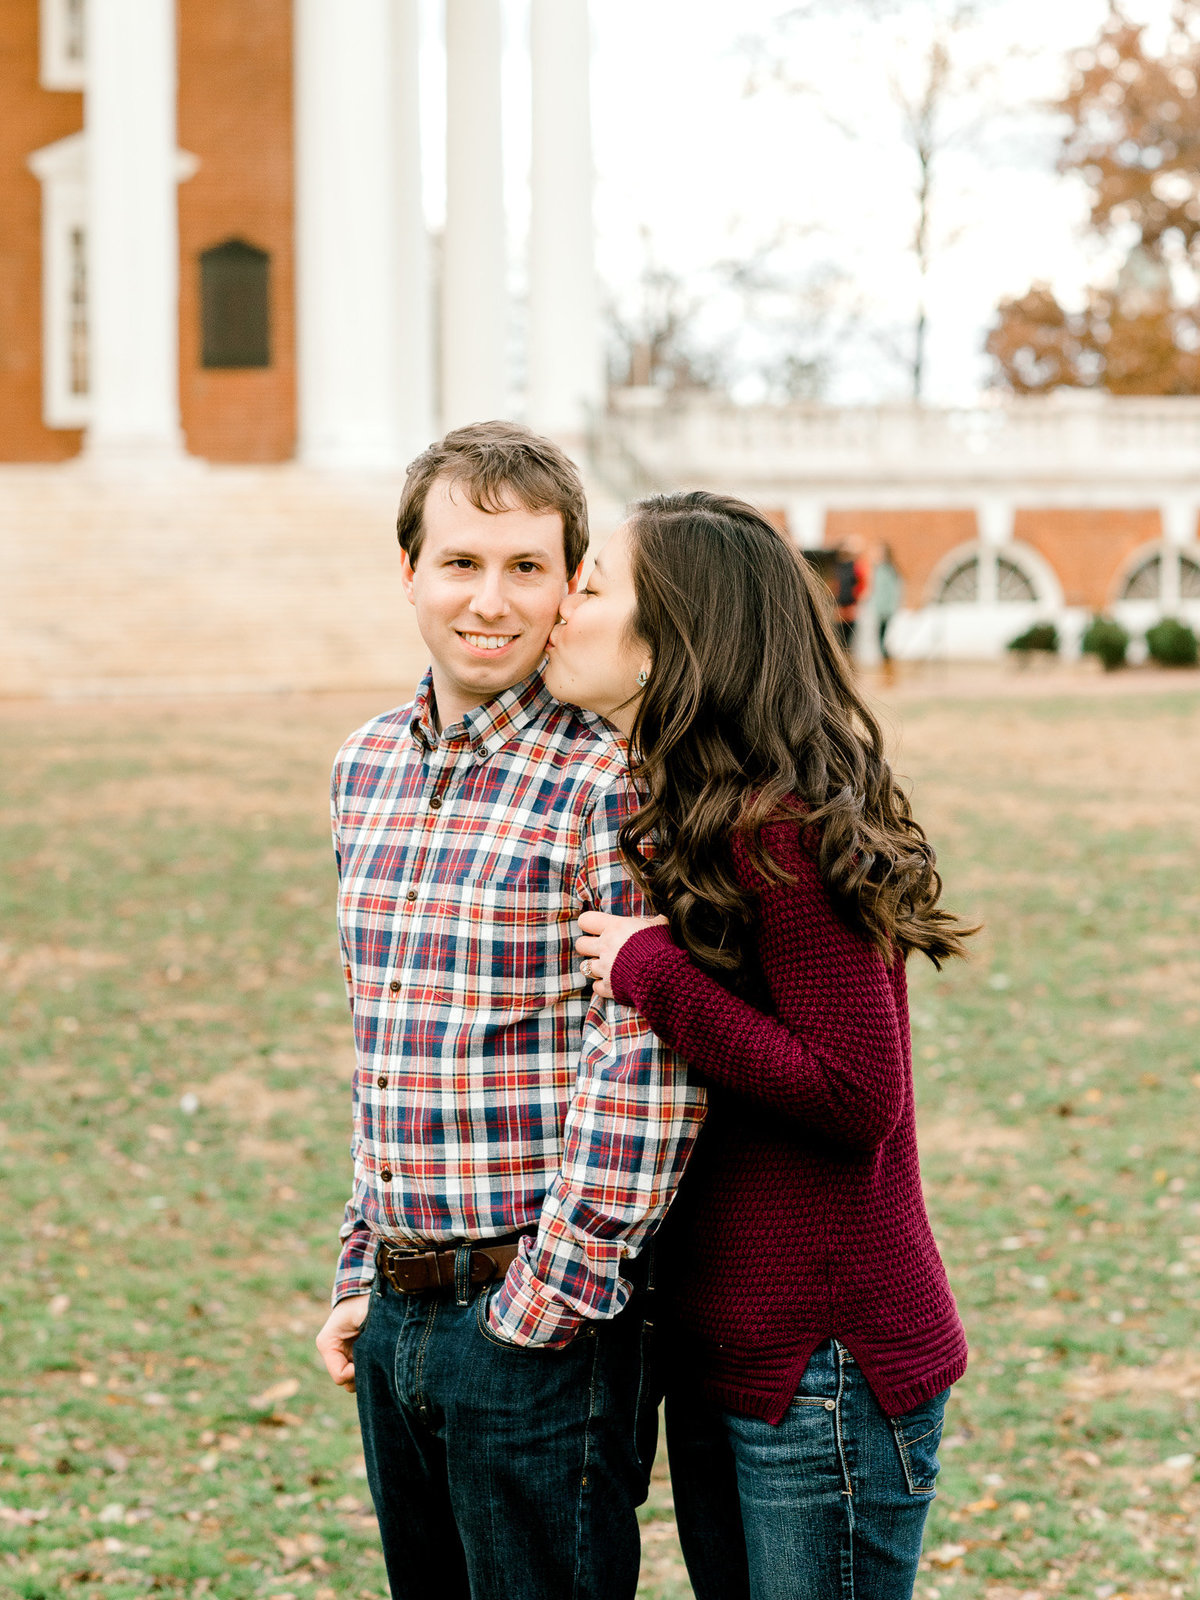 FACEBOOK-Monica and Justin Engagement Session-7